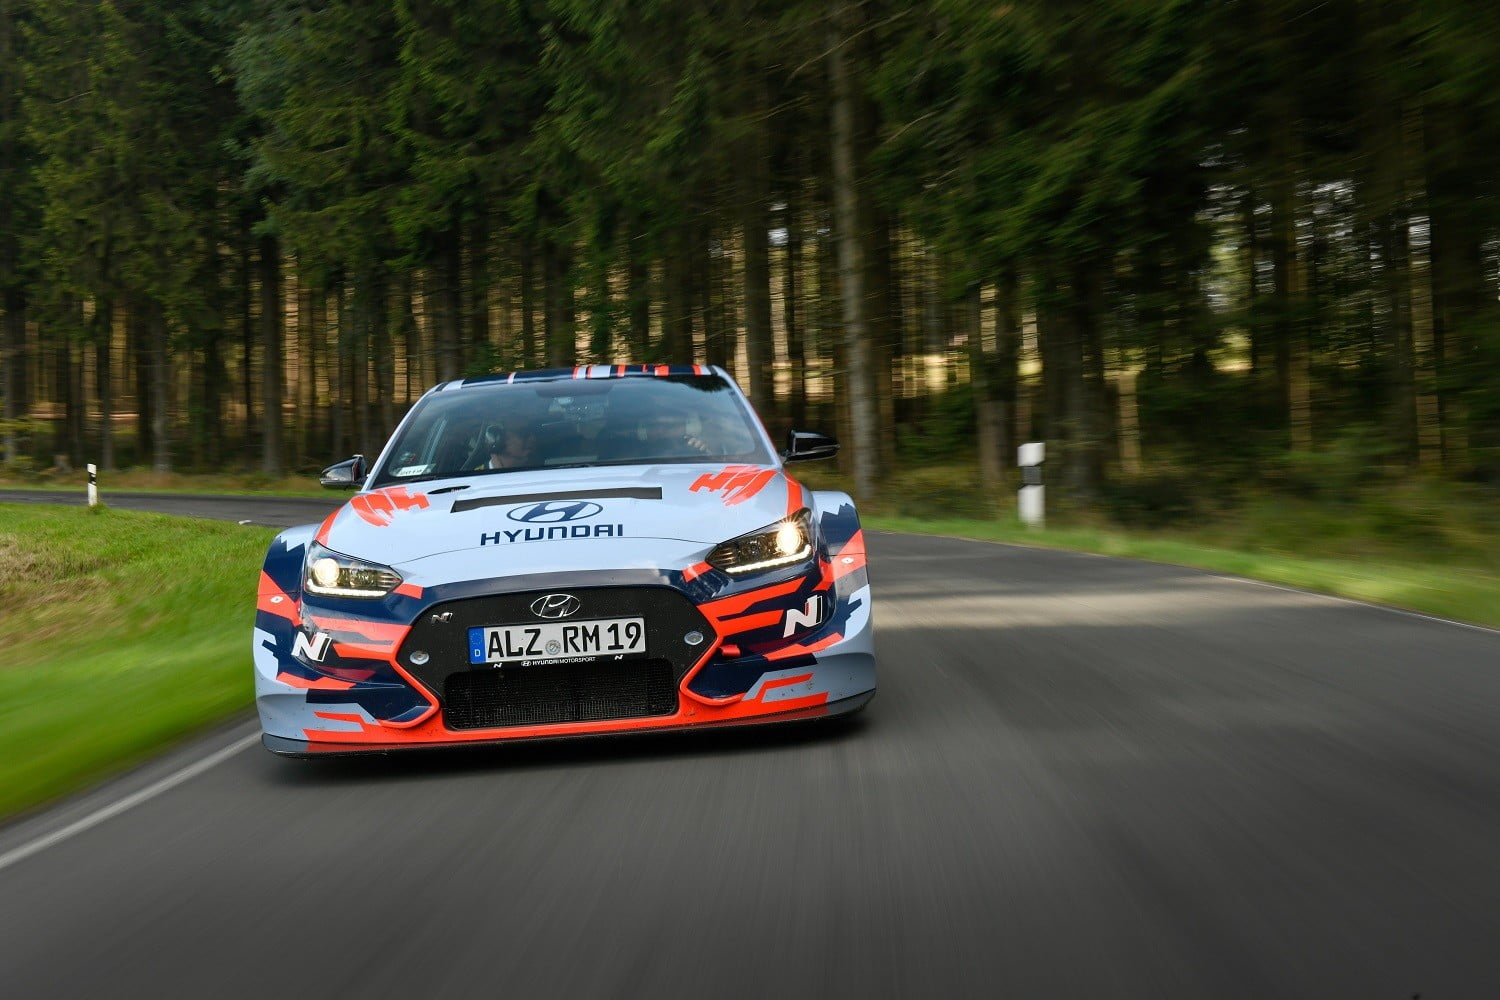 mid engined hyundai rm19 hot hatch unveiled at los angeles auto show ring 2